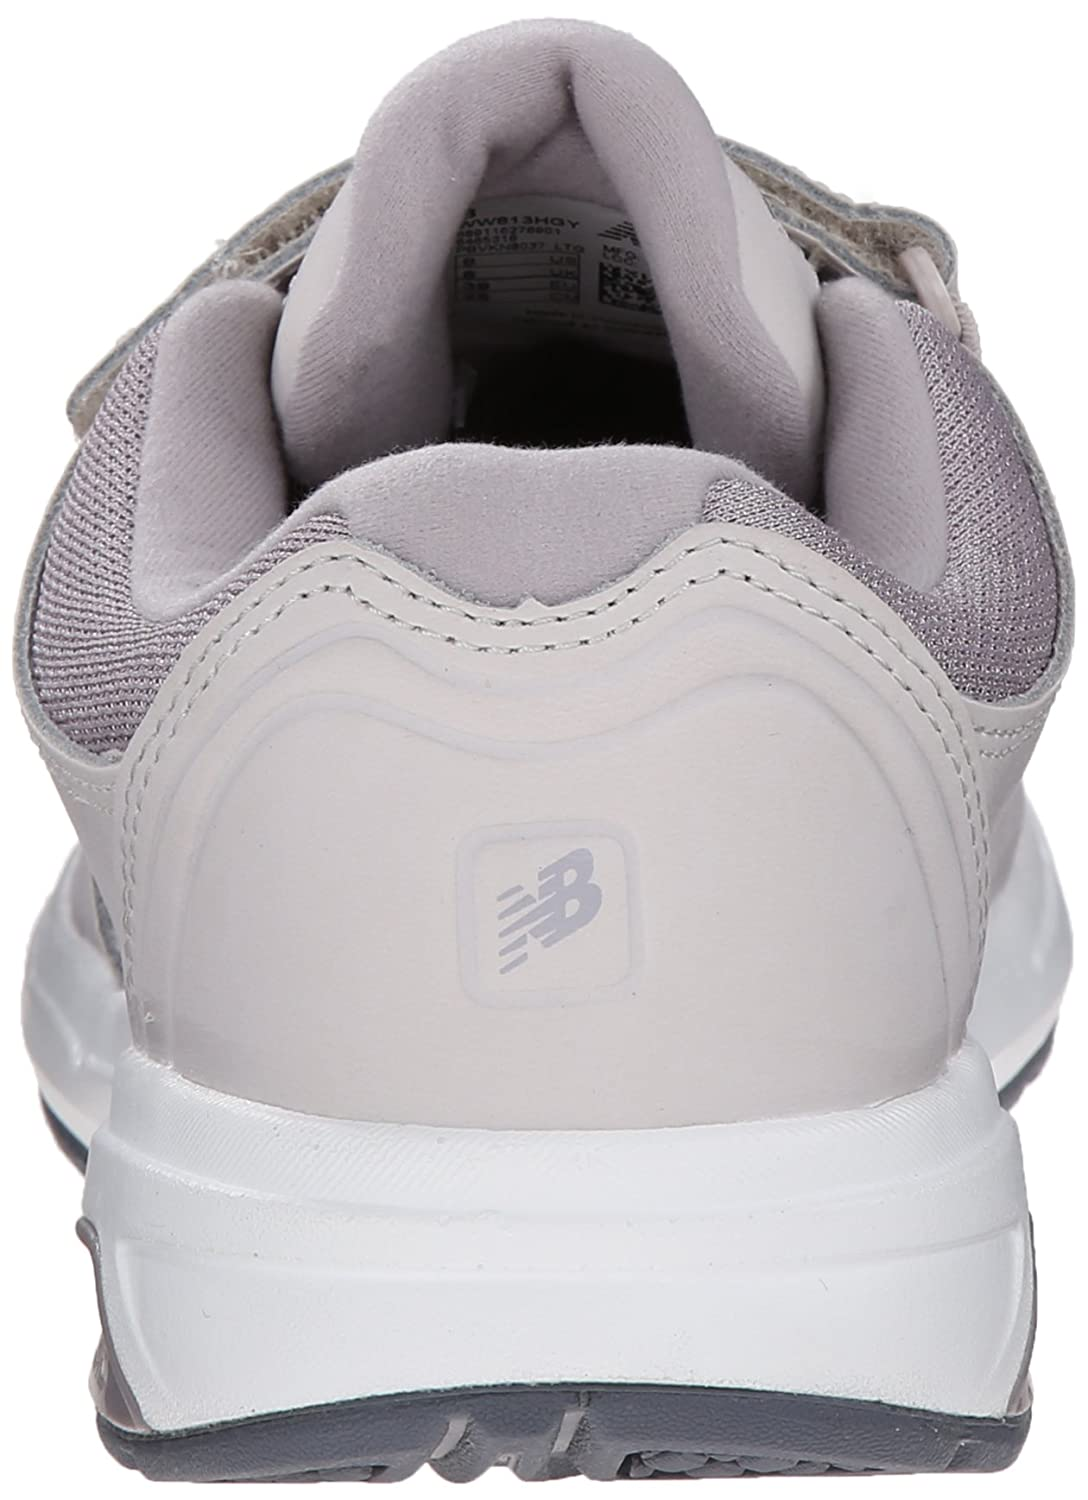 New Balance Women's WW813 Hook and Loop Walking Shoe B00R792G8G 11 2A US|Grey